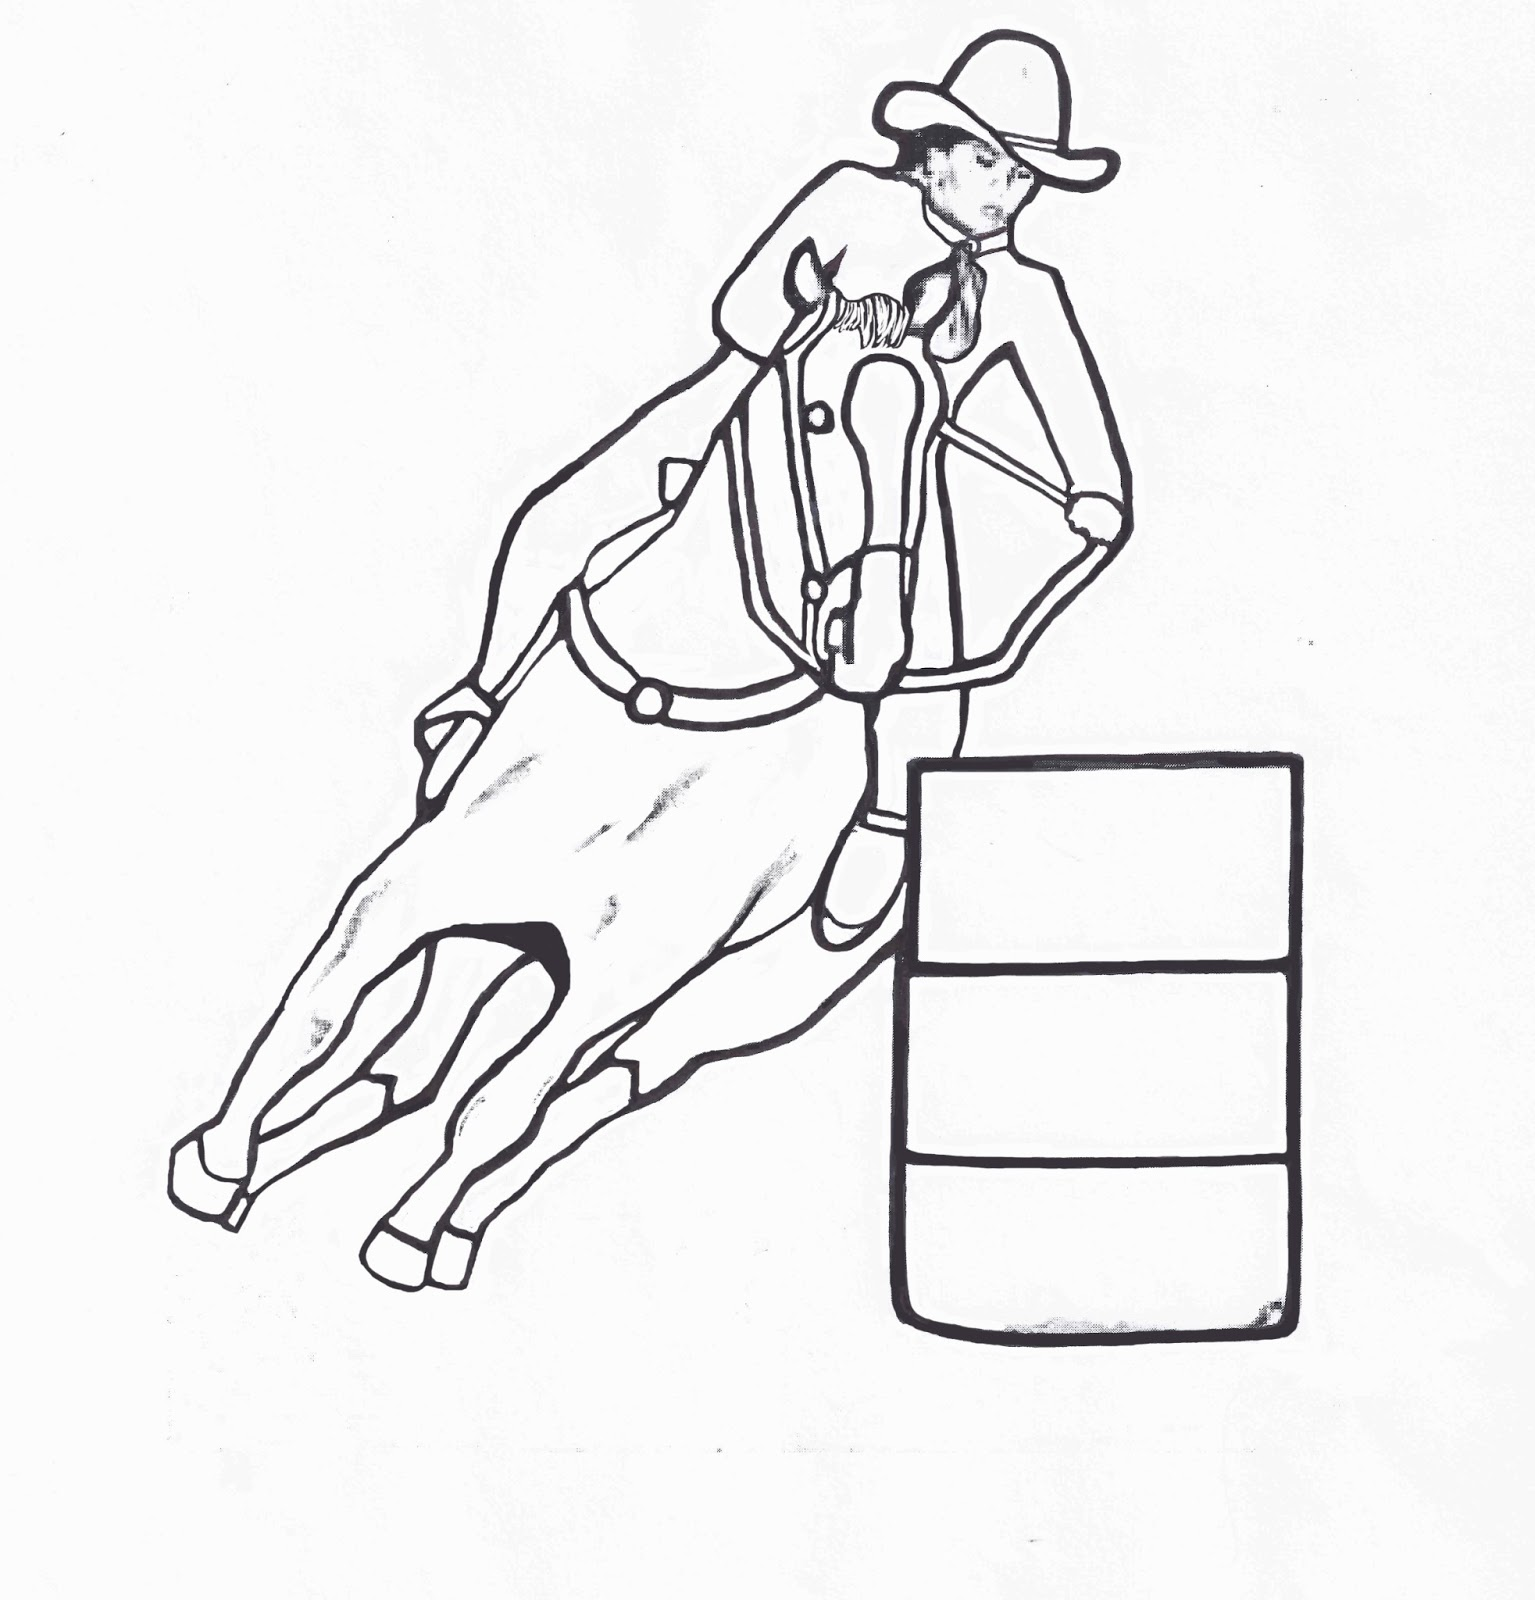 1535x1600 Barrel Racing Coloring Pages, Barrel Racing Coloring Pages